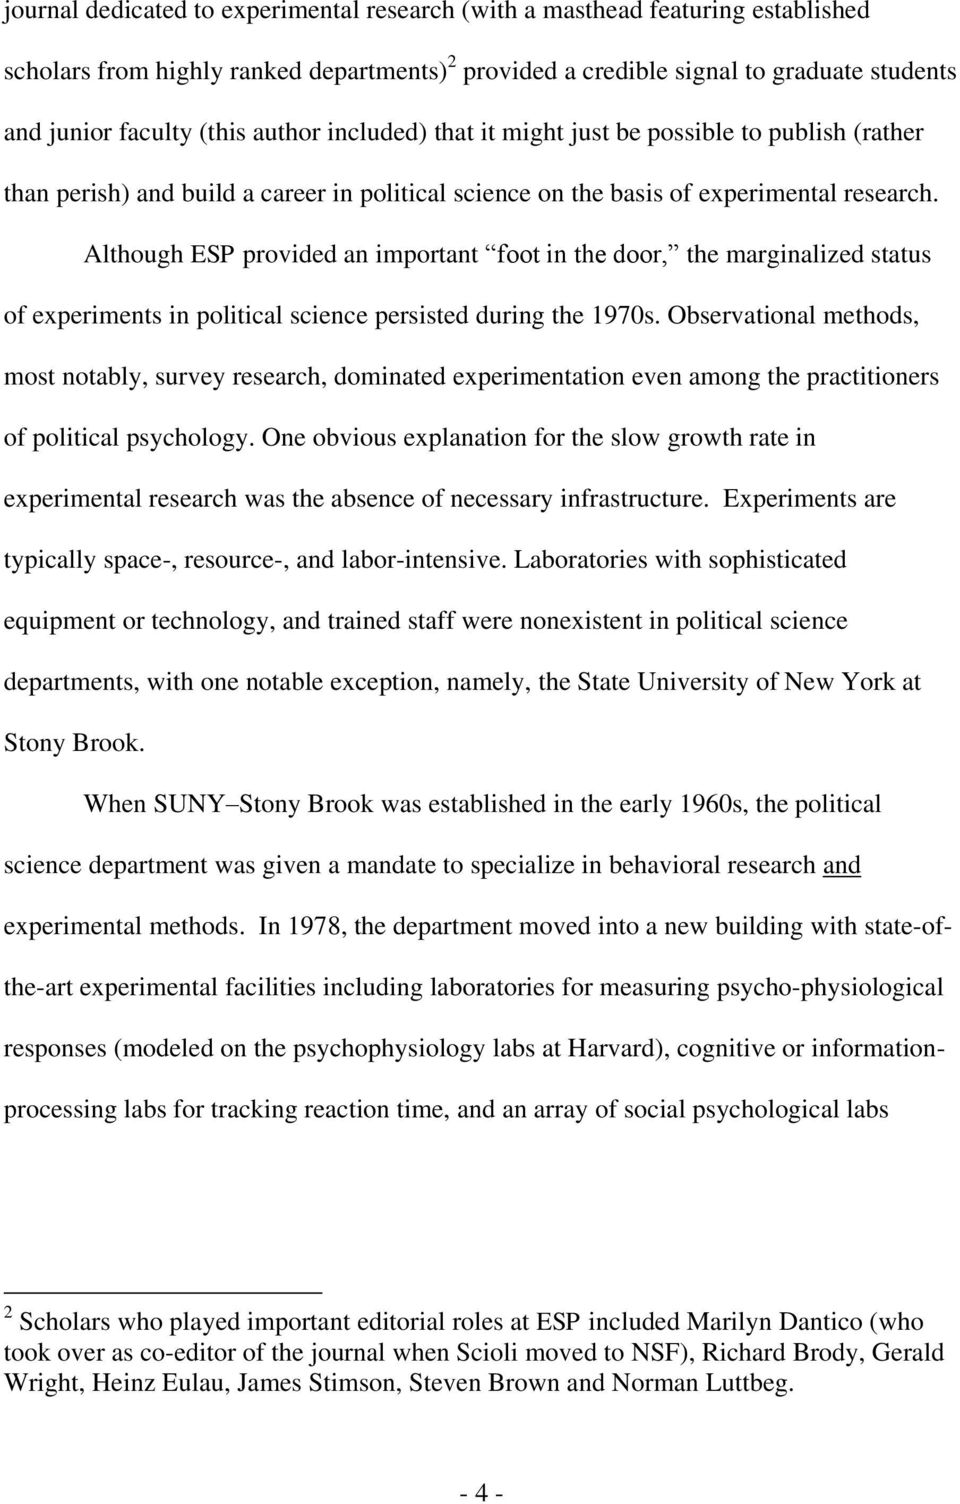 Although ESP provided an important foot in the door, the marginalized status of experiments in political science persisted during the 1970s.